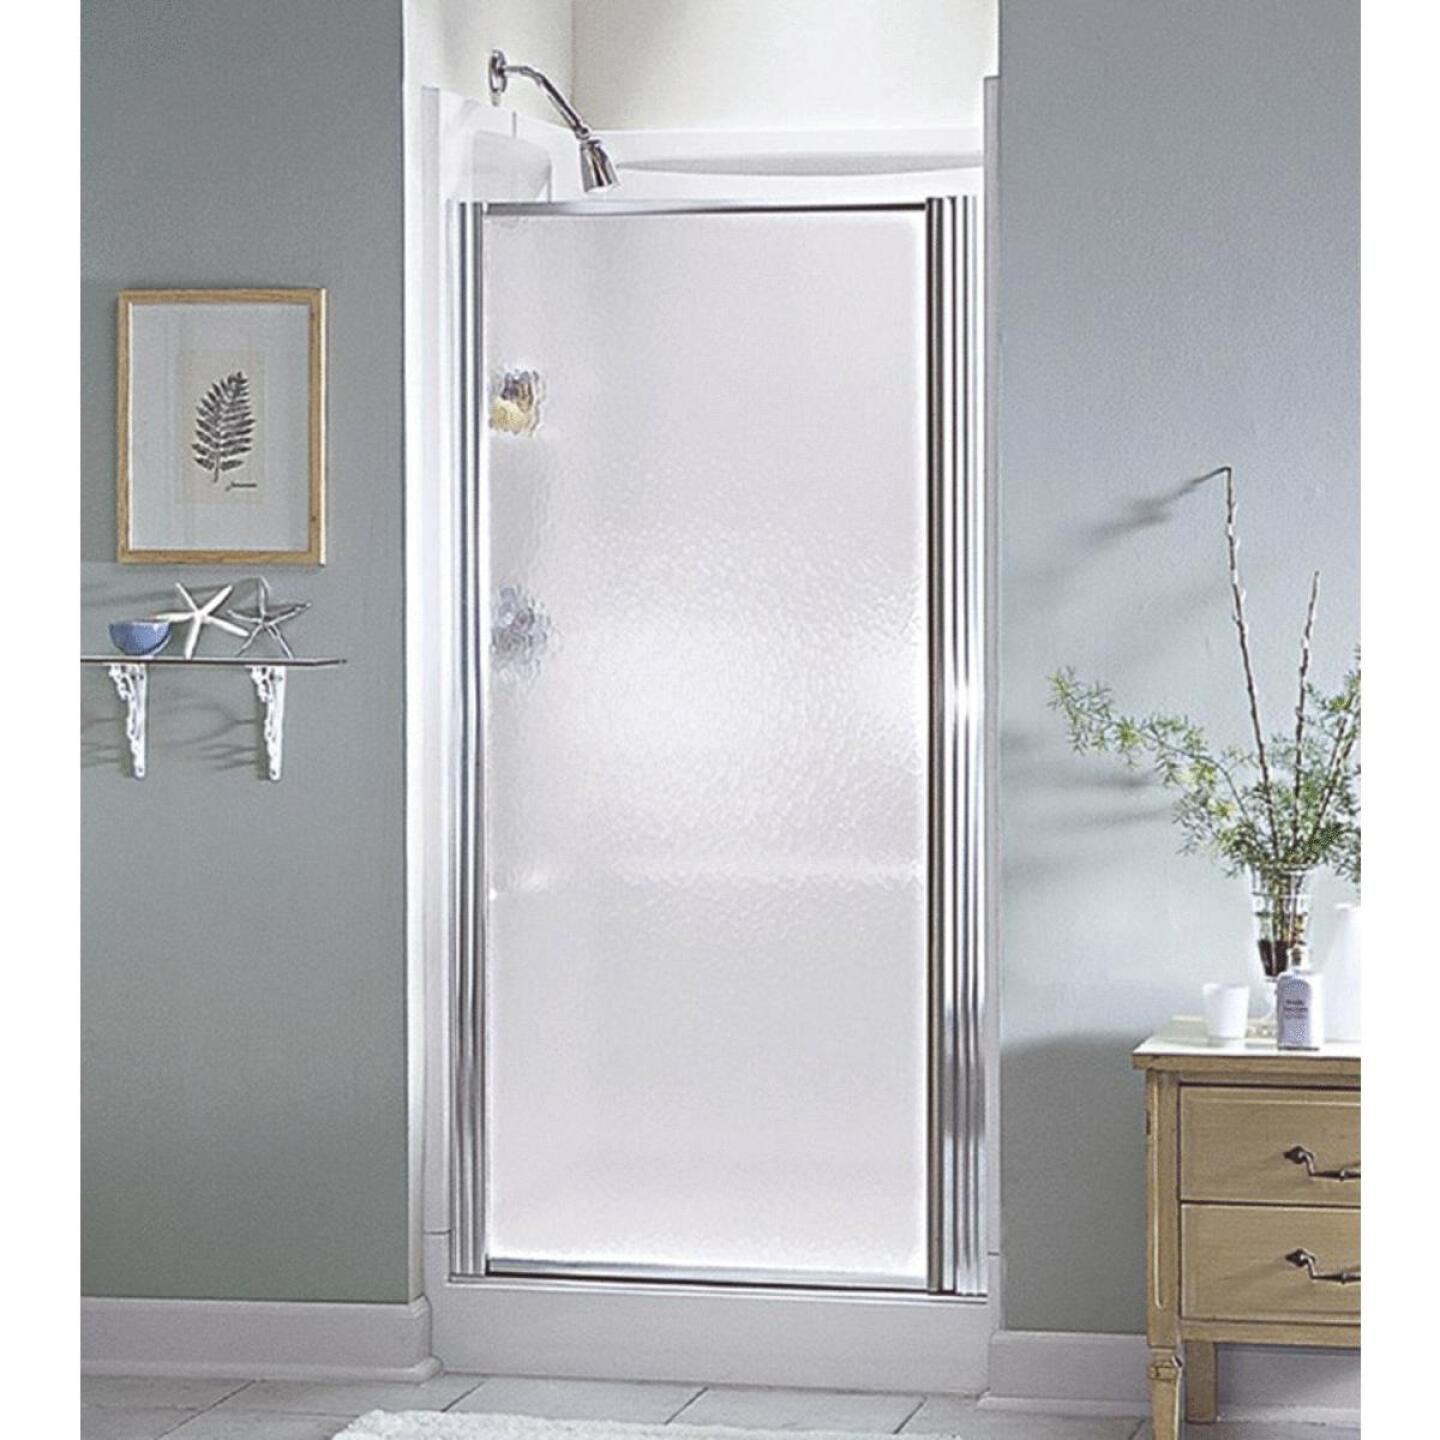 Sterling 32-1/2 In. W. X 64 In. H. Chrome Hammered Glass Standard Pivot Shower Door Image 1